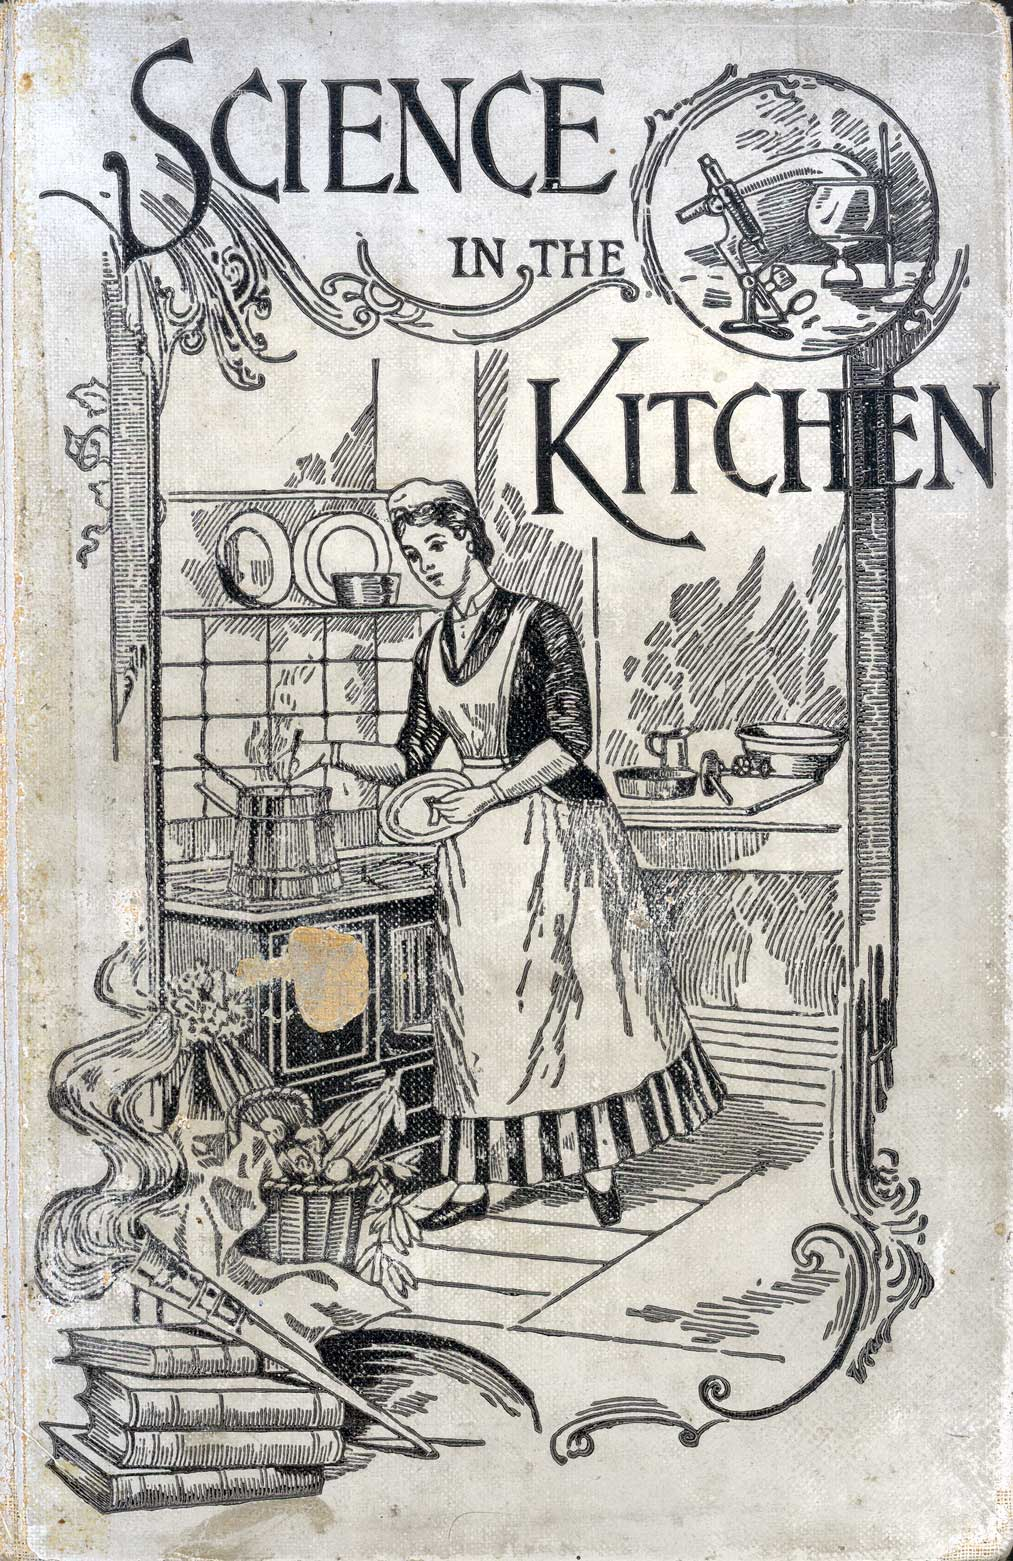 Science in the kitchen : a scientific treatise on food substances and their dietetic properties, together with a practical explanation of the principles of healthful cookery, and a large number of original, palatable, and wholesome recipes